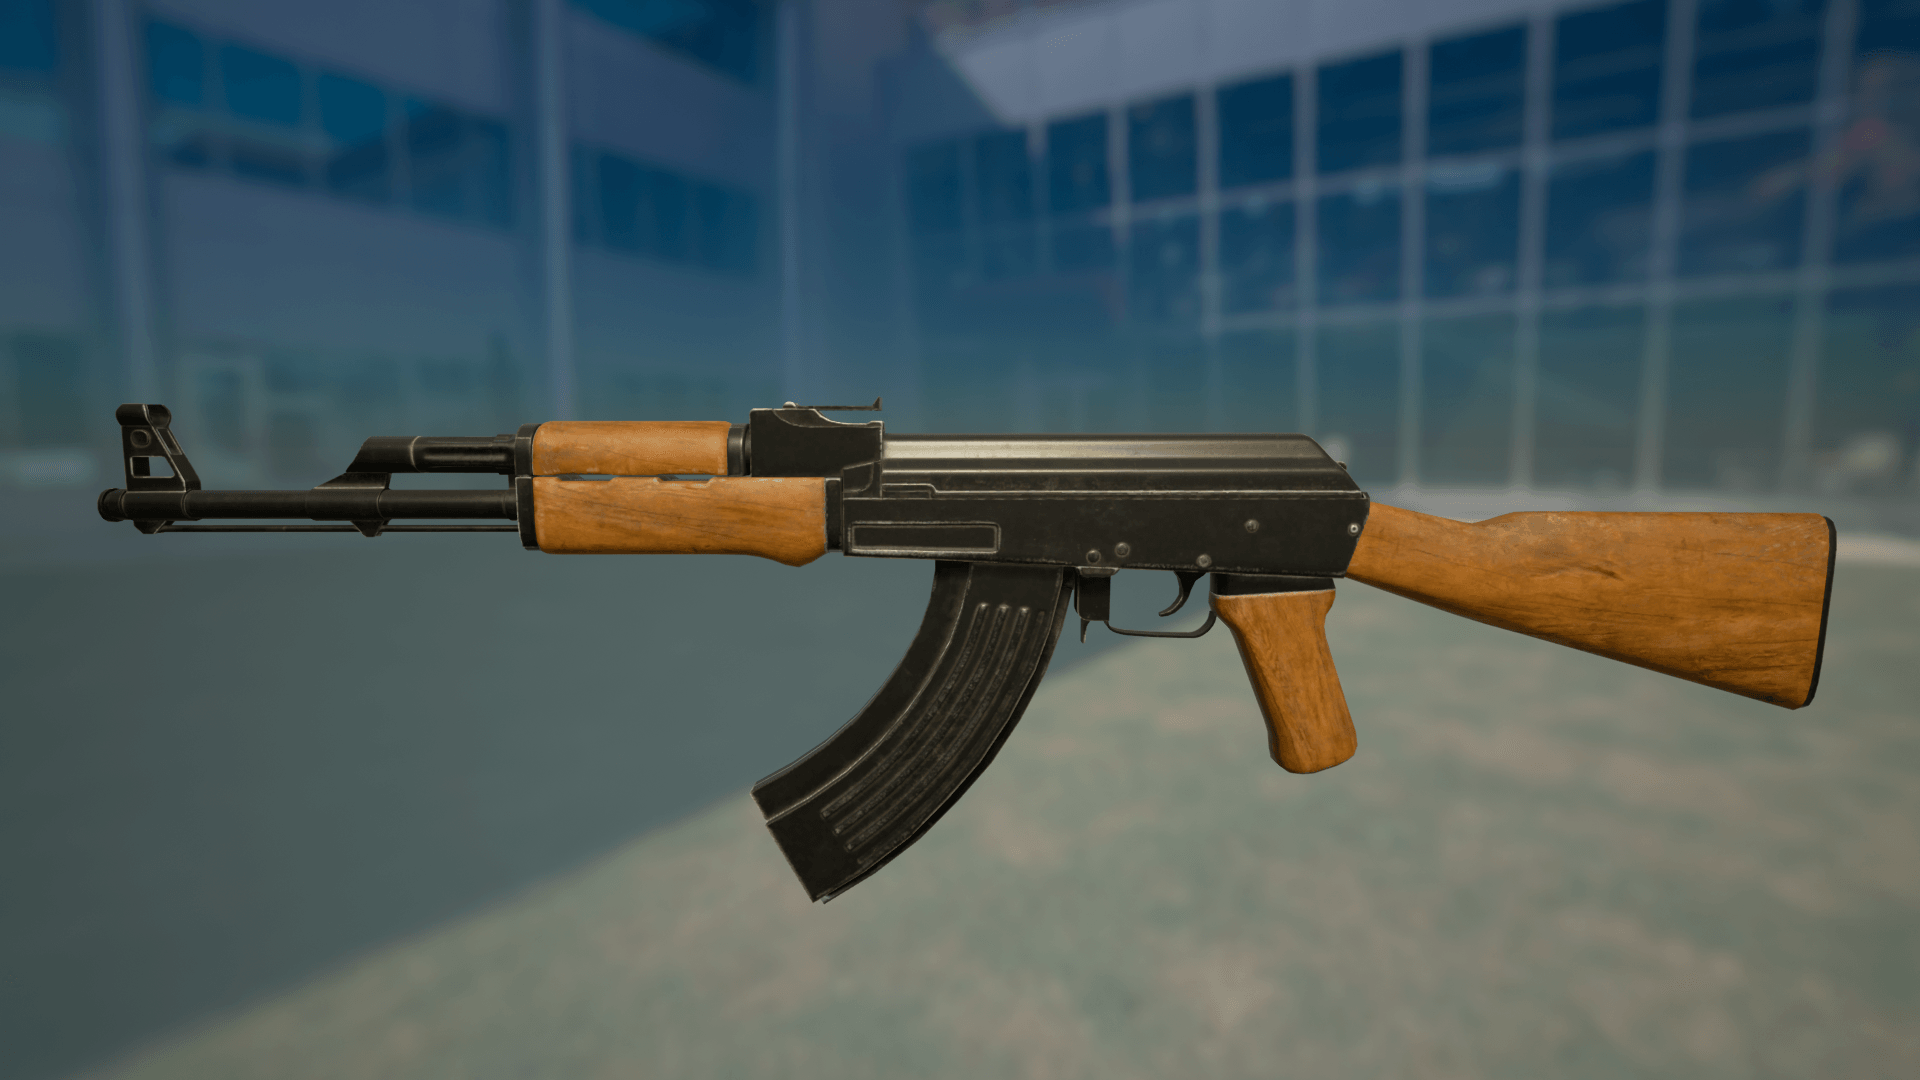 AK47 by Alexander Bezdelov in Weapons - UE4 Marketplace